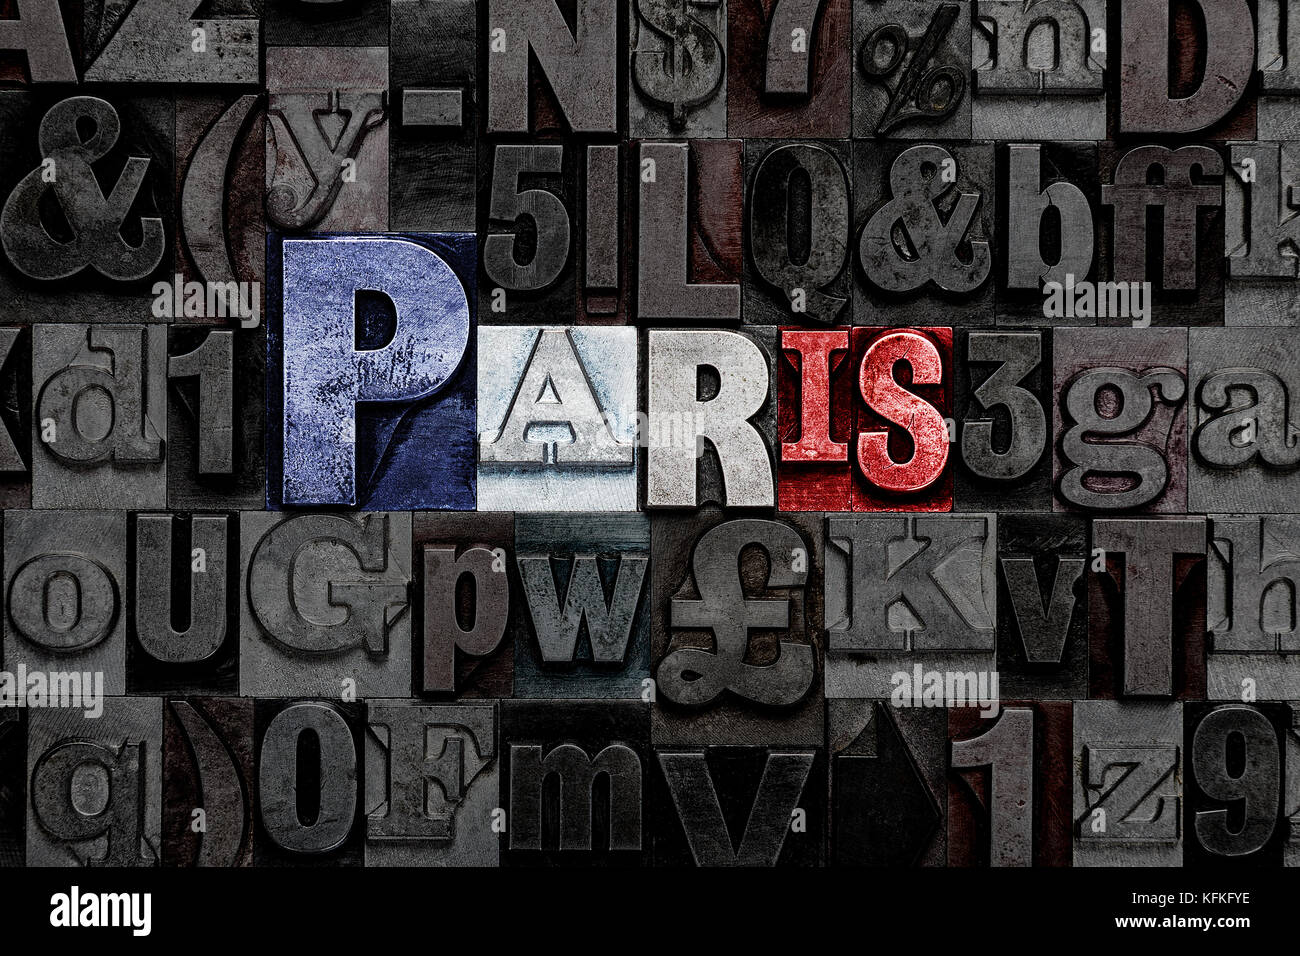 Old Metal Letters Inspiration The Word Paris Made From Old Metal Letterpress Letters With The Decorating Inspiration